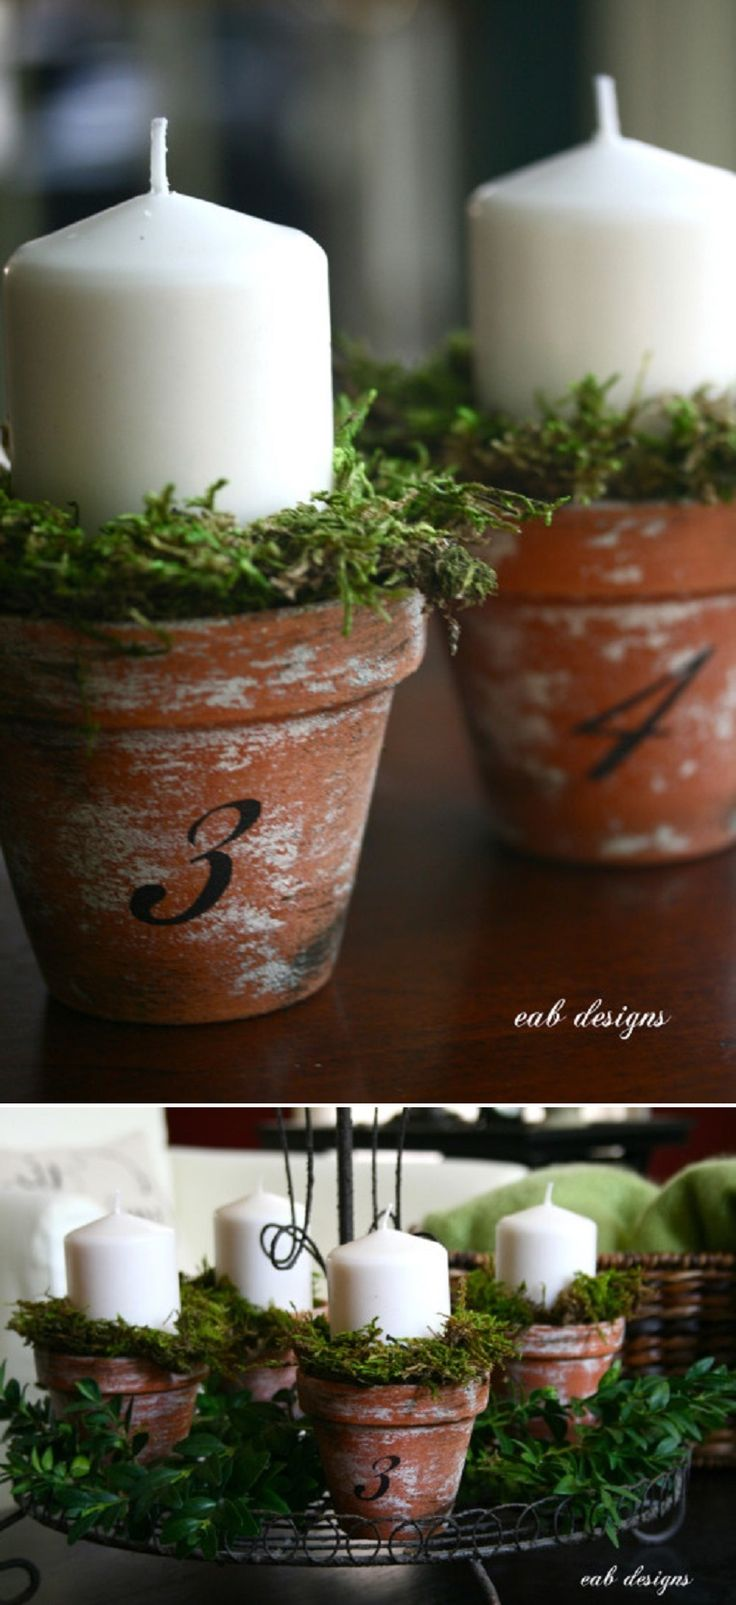 Candles in Terracotta Pots - 17 Wedding Ideas To DIY Instead Of Buy For The Big Day | GleamItUp